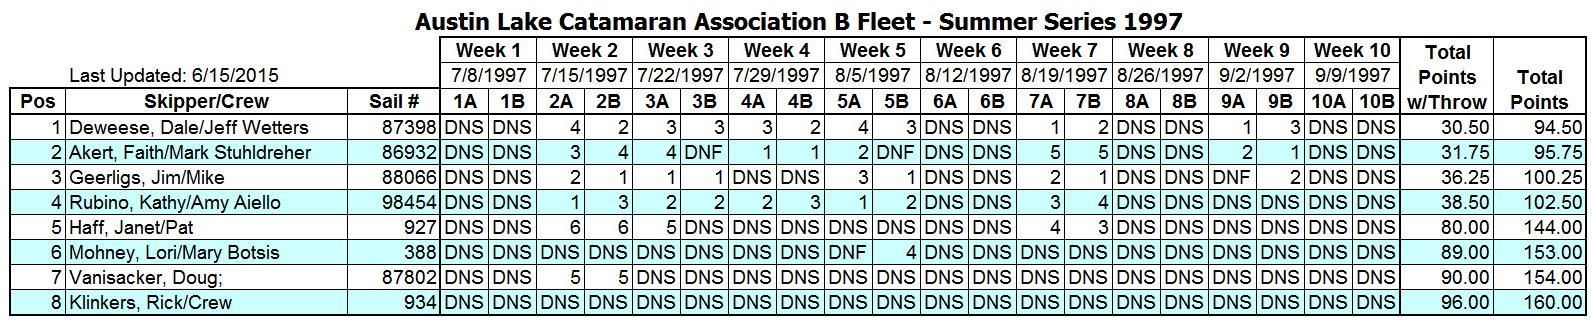 1997 Summer B Fleet Results